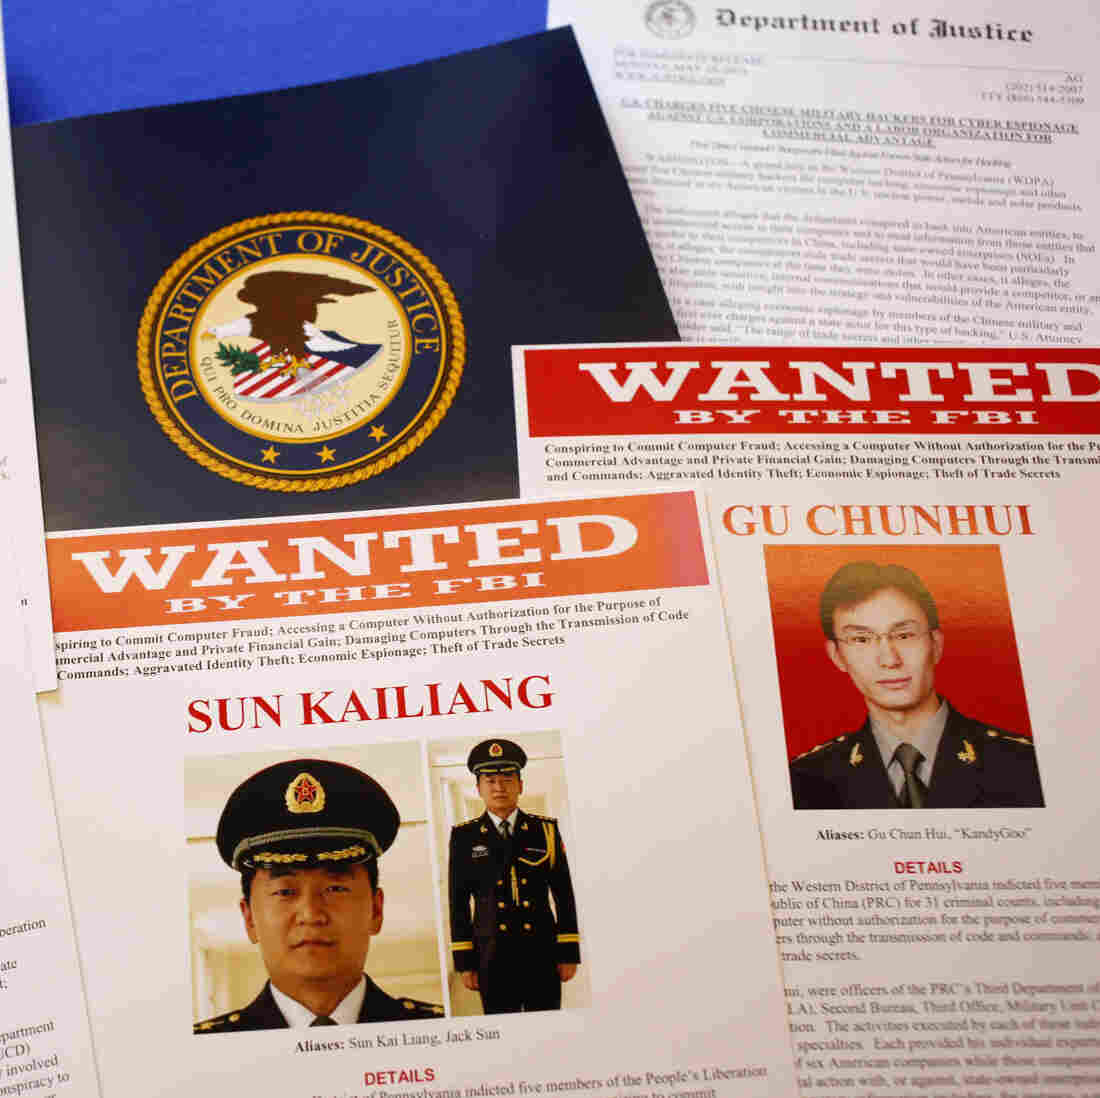 U.S. Files Criminal Charges Against Chinese Officials Over Cyberspying